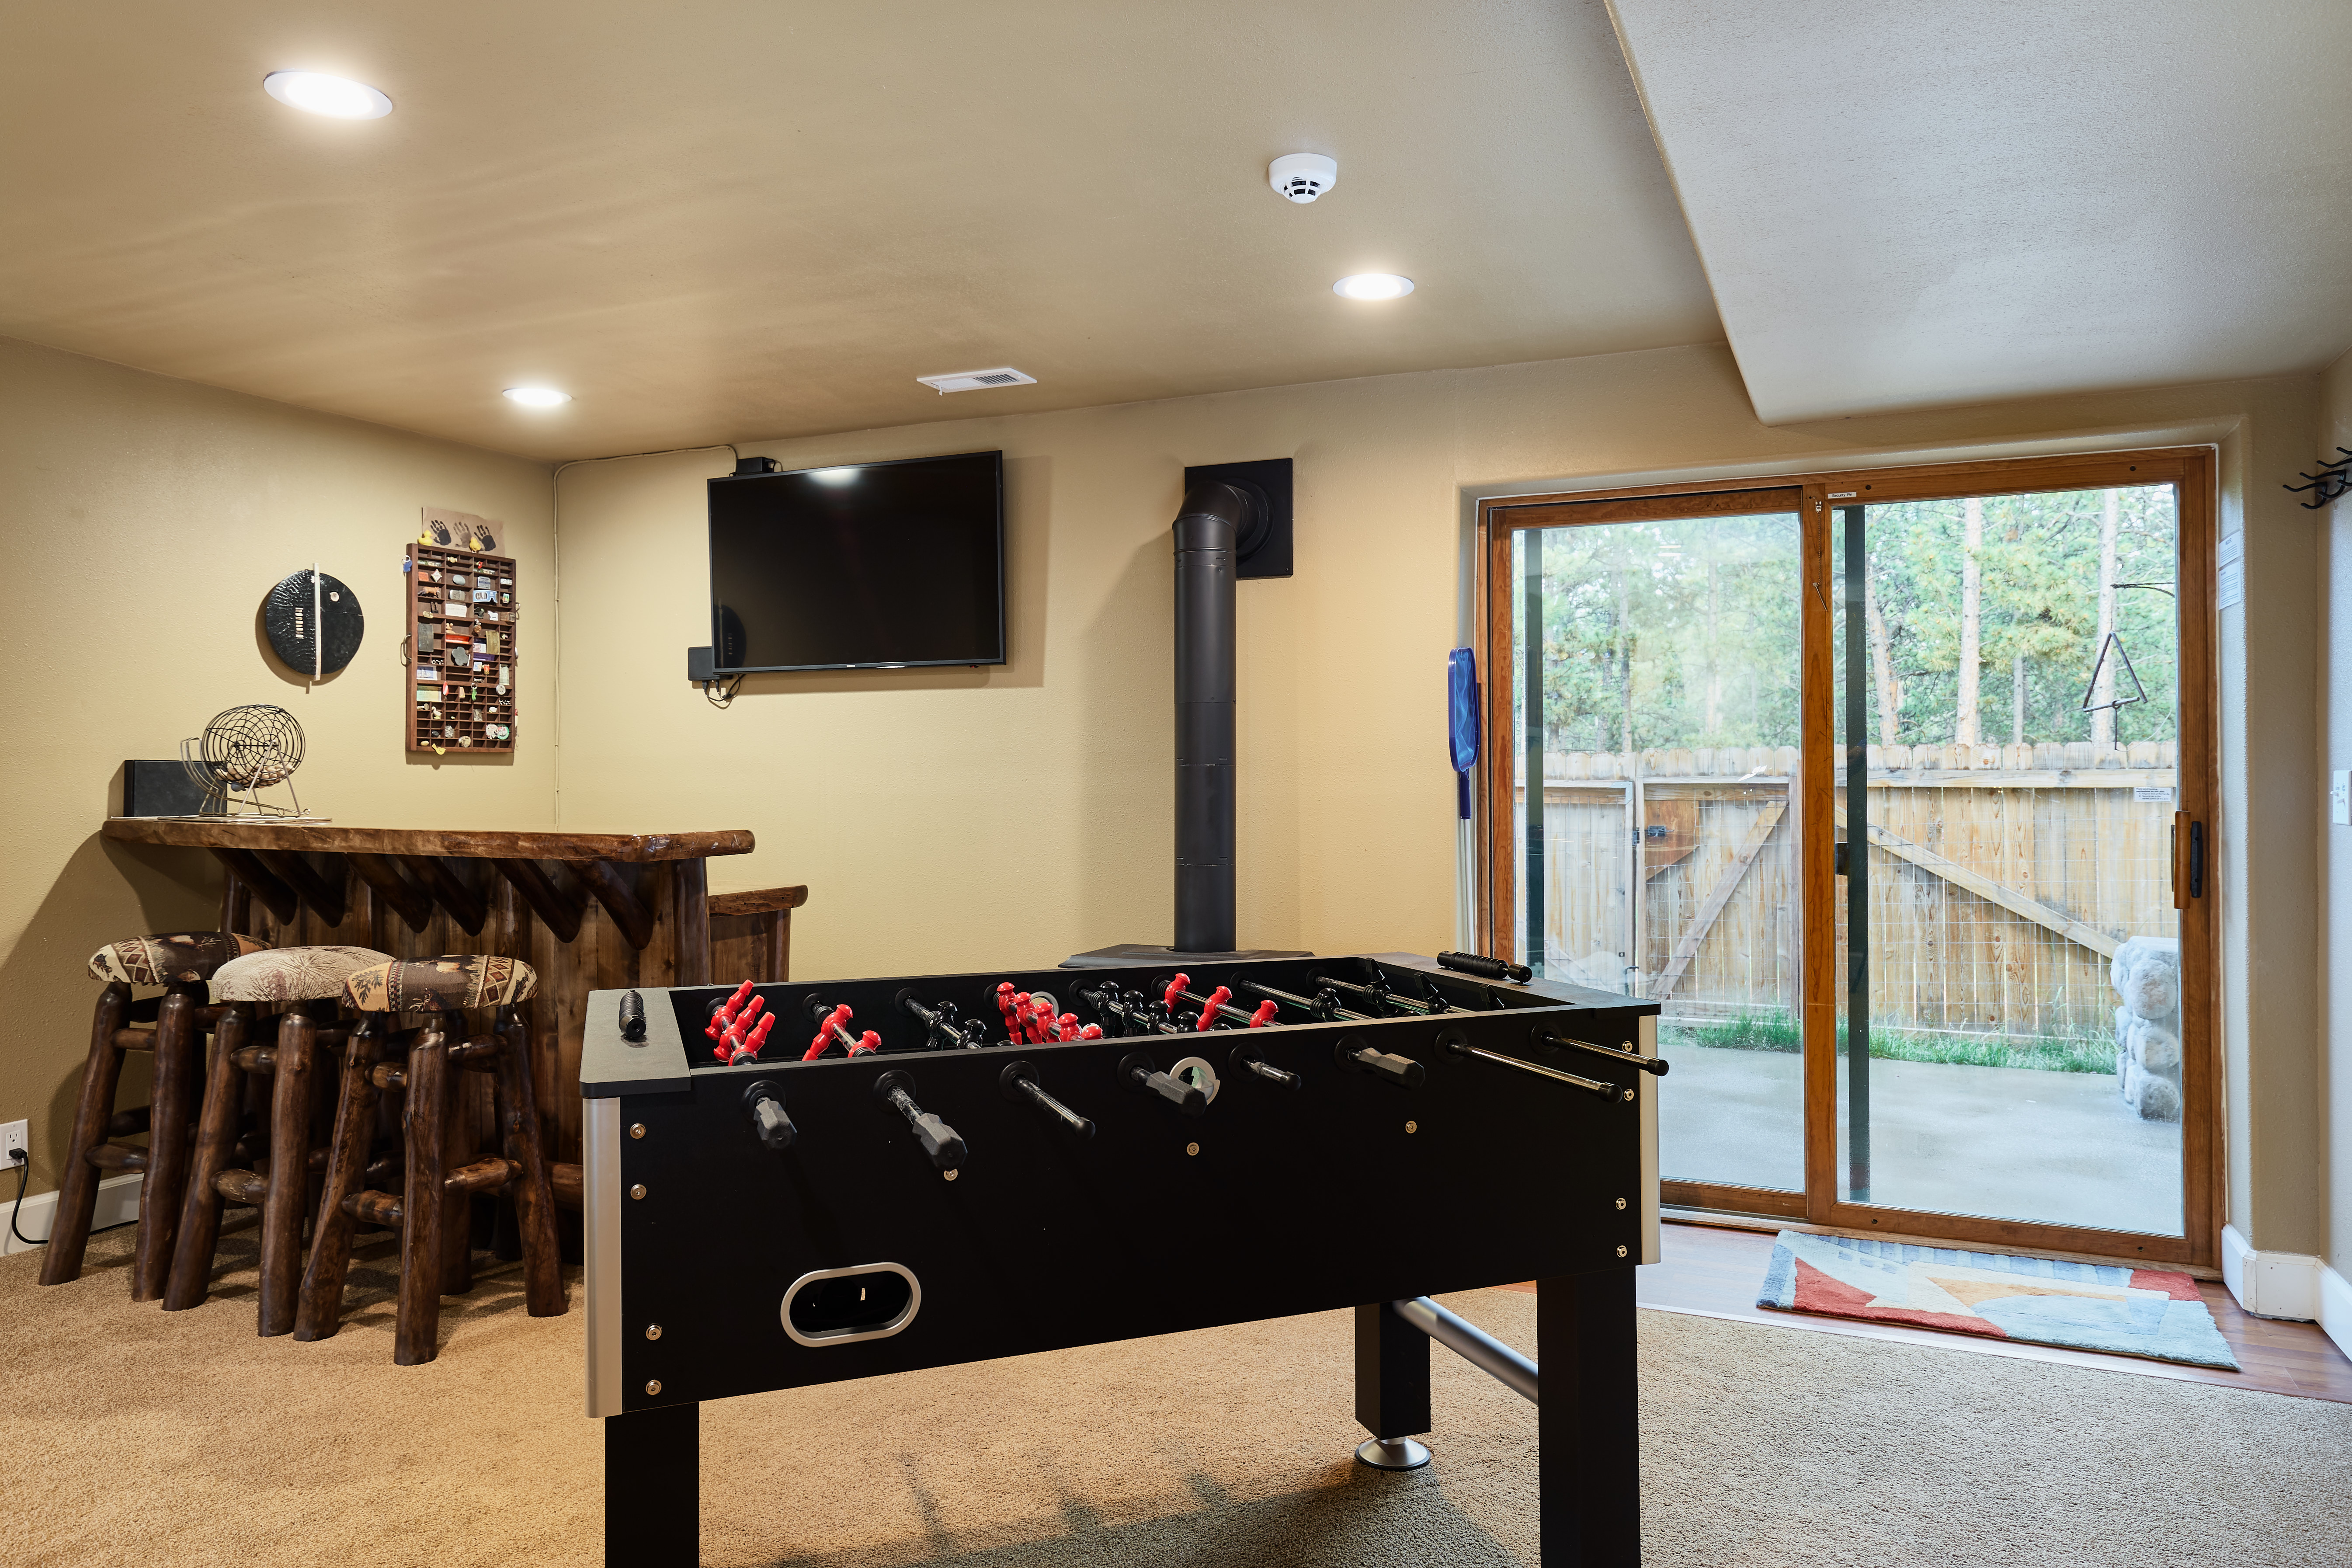 You can access to the patio and hot tub through the game room.